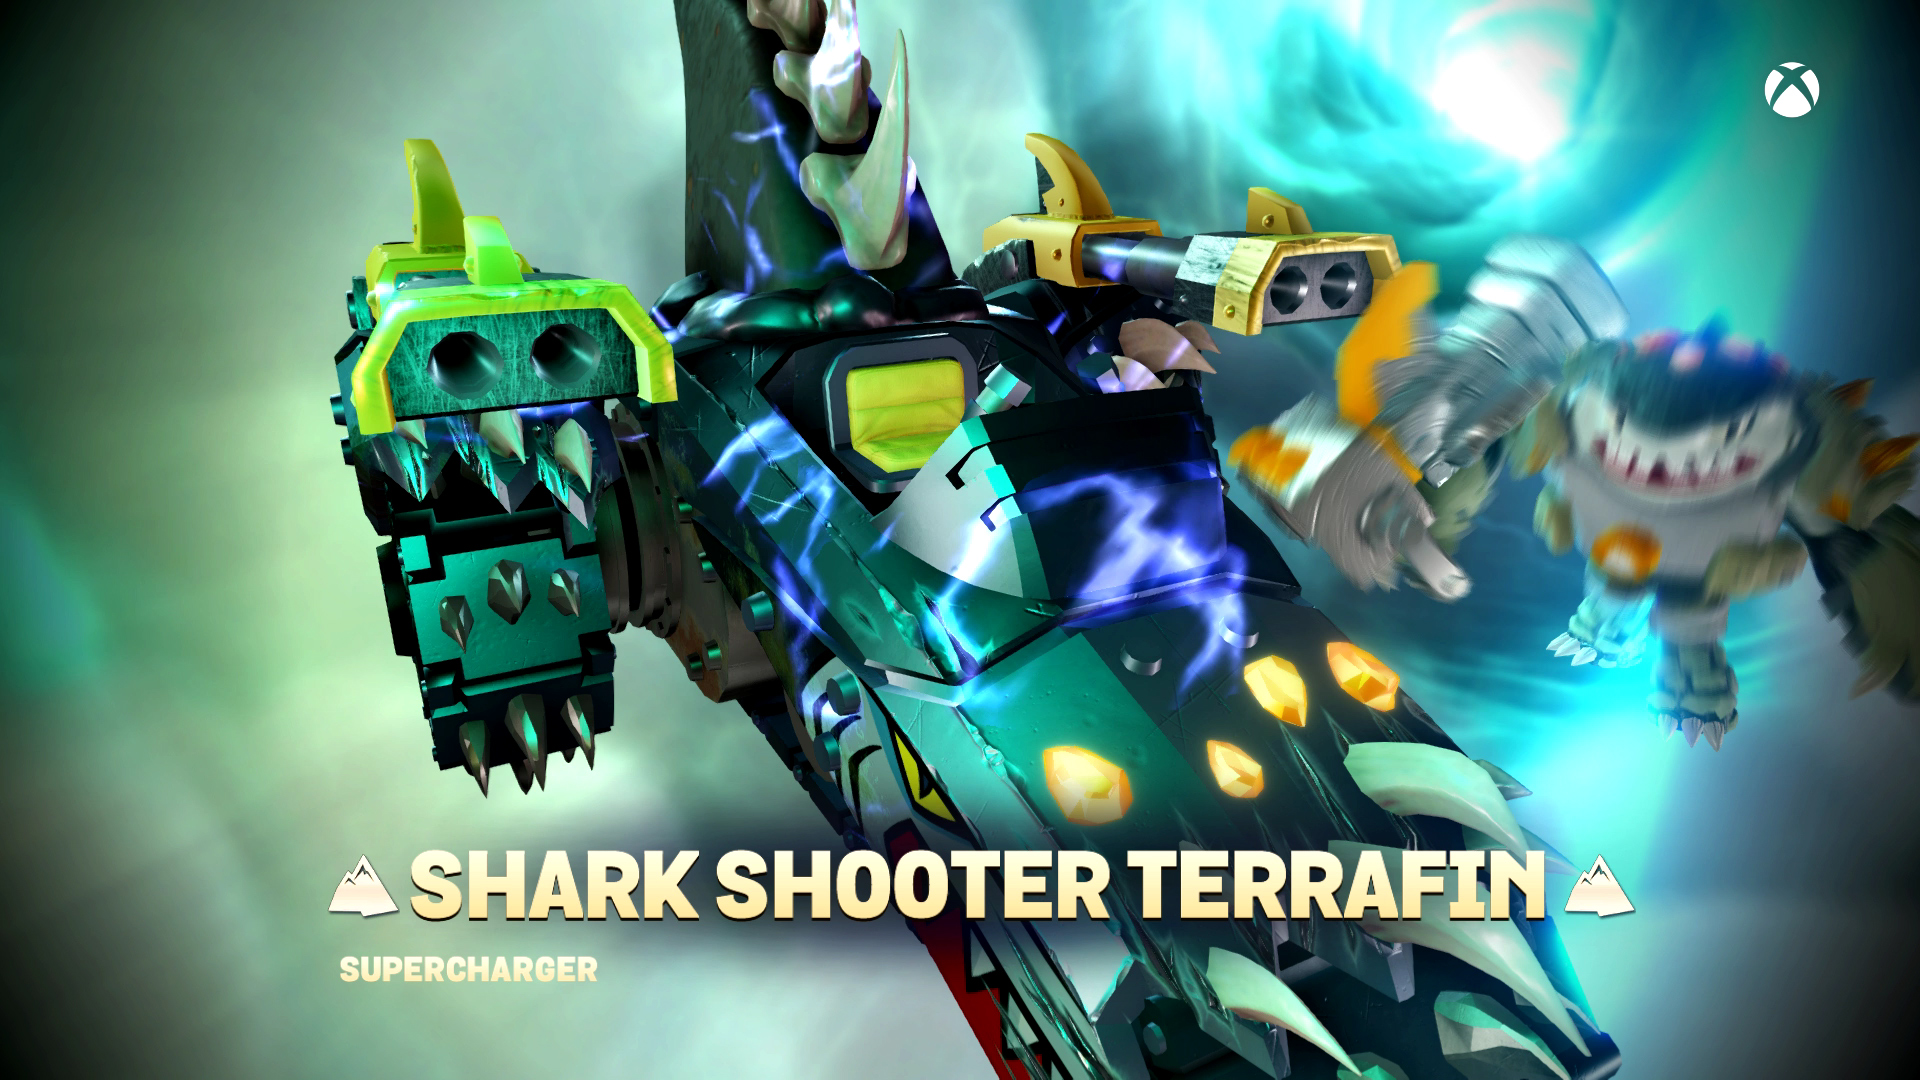 Skylanders SuperChargers Shark Shooter Terrafin SuperCharged